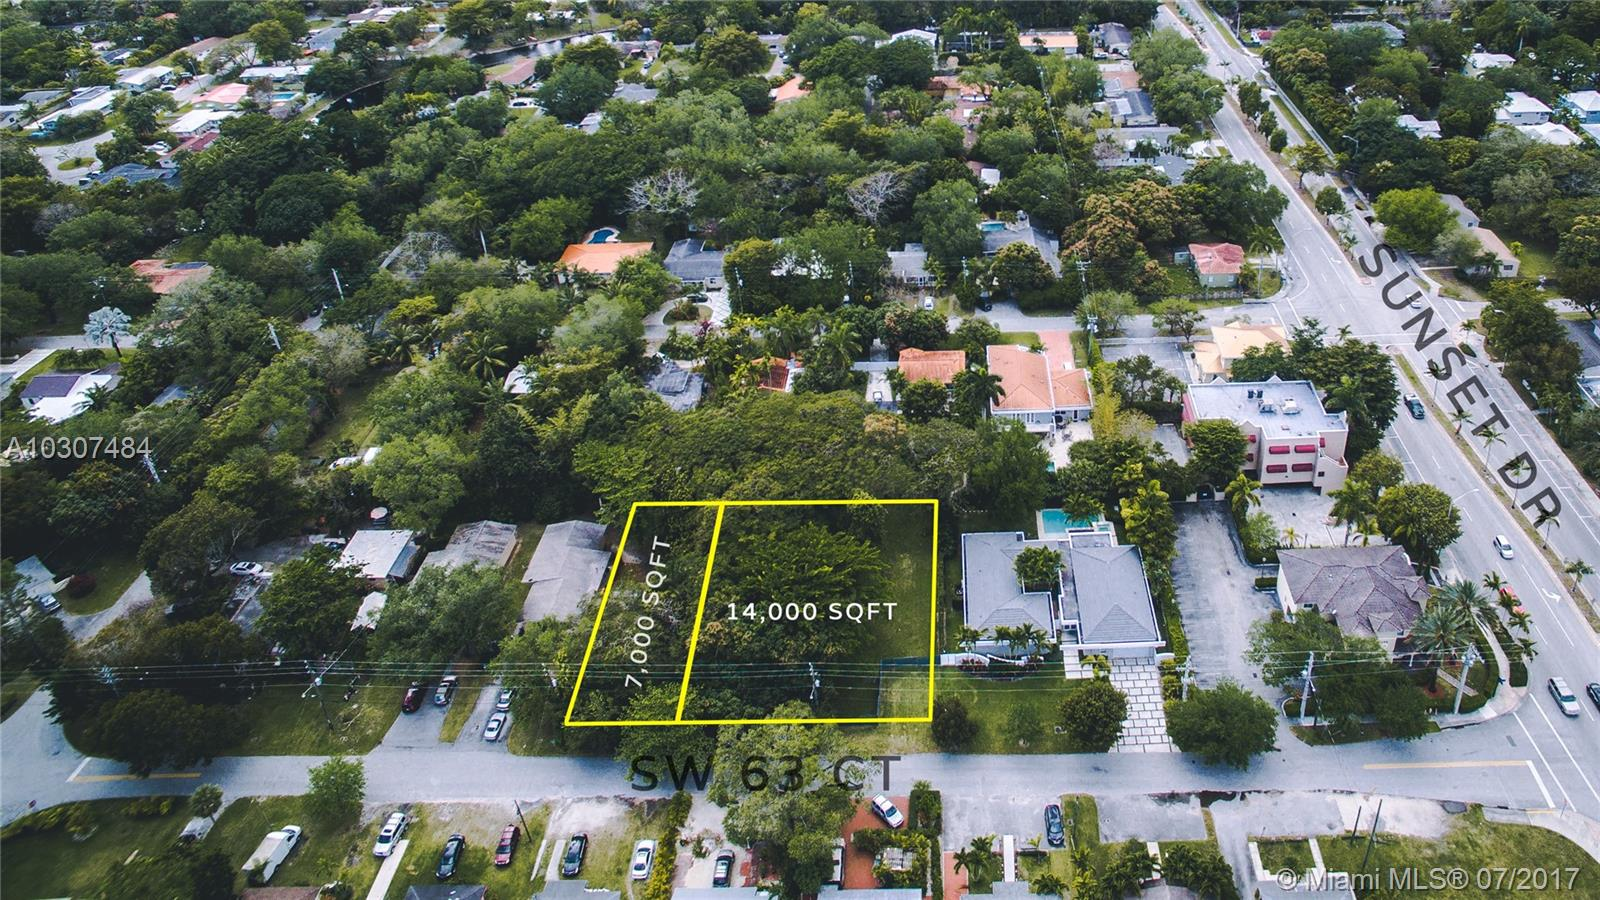 7240 Sw 63rd Ct, South Miami FL, 33143